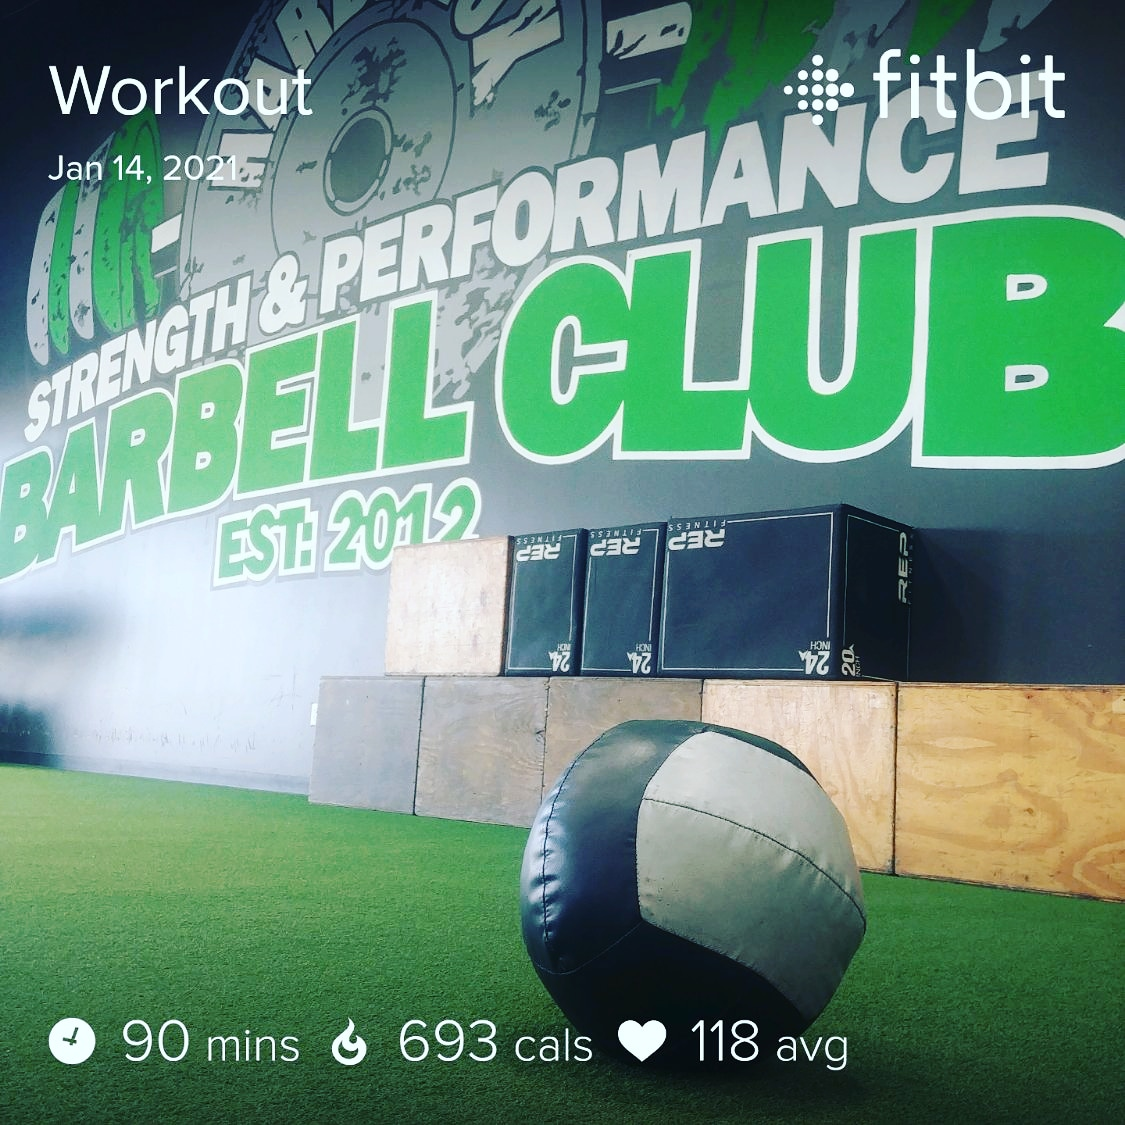 My gosh, I had #fun #today. (But I have fun #everyday at #Hardknox.👊) 🏋🏋🏋 💪💪💪 #Thunderstruck #ACDC #quickfeet #burpees #sprints #wallballshots #abs #upperbody #workout #workoutmotivation #gym #HardknoxMornings #HardknoxStrong #TeamULTRA #LiveULTRA #doitforthecheers